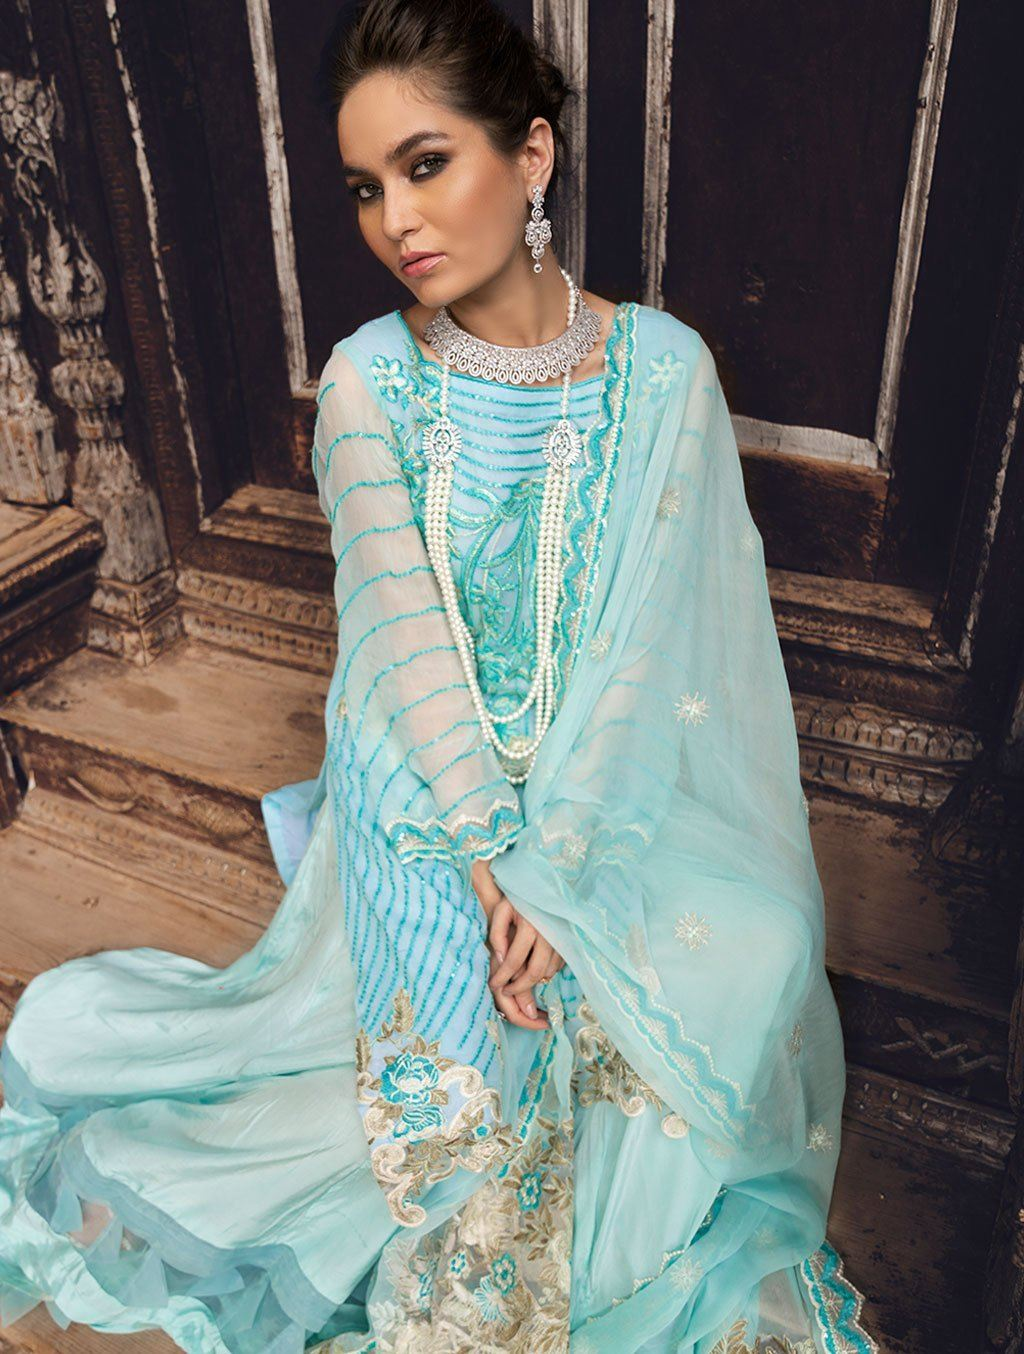 KNAC-1099 Chiffon Collection 2020-Volume 2 FASUNSLAD